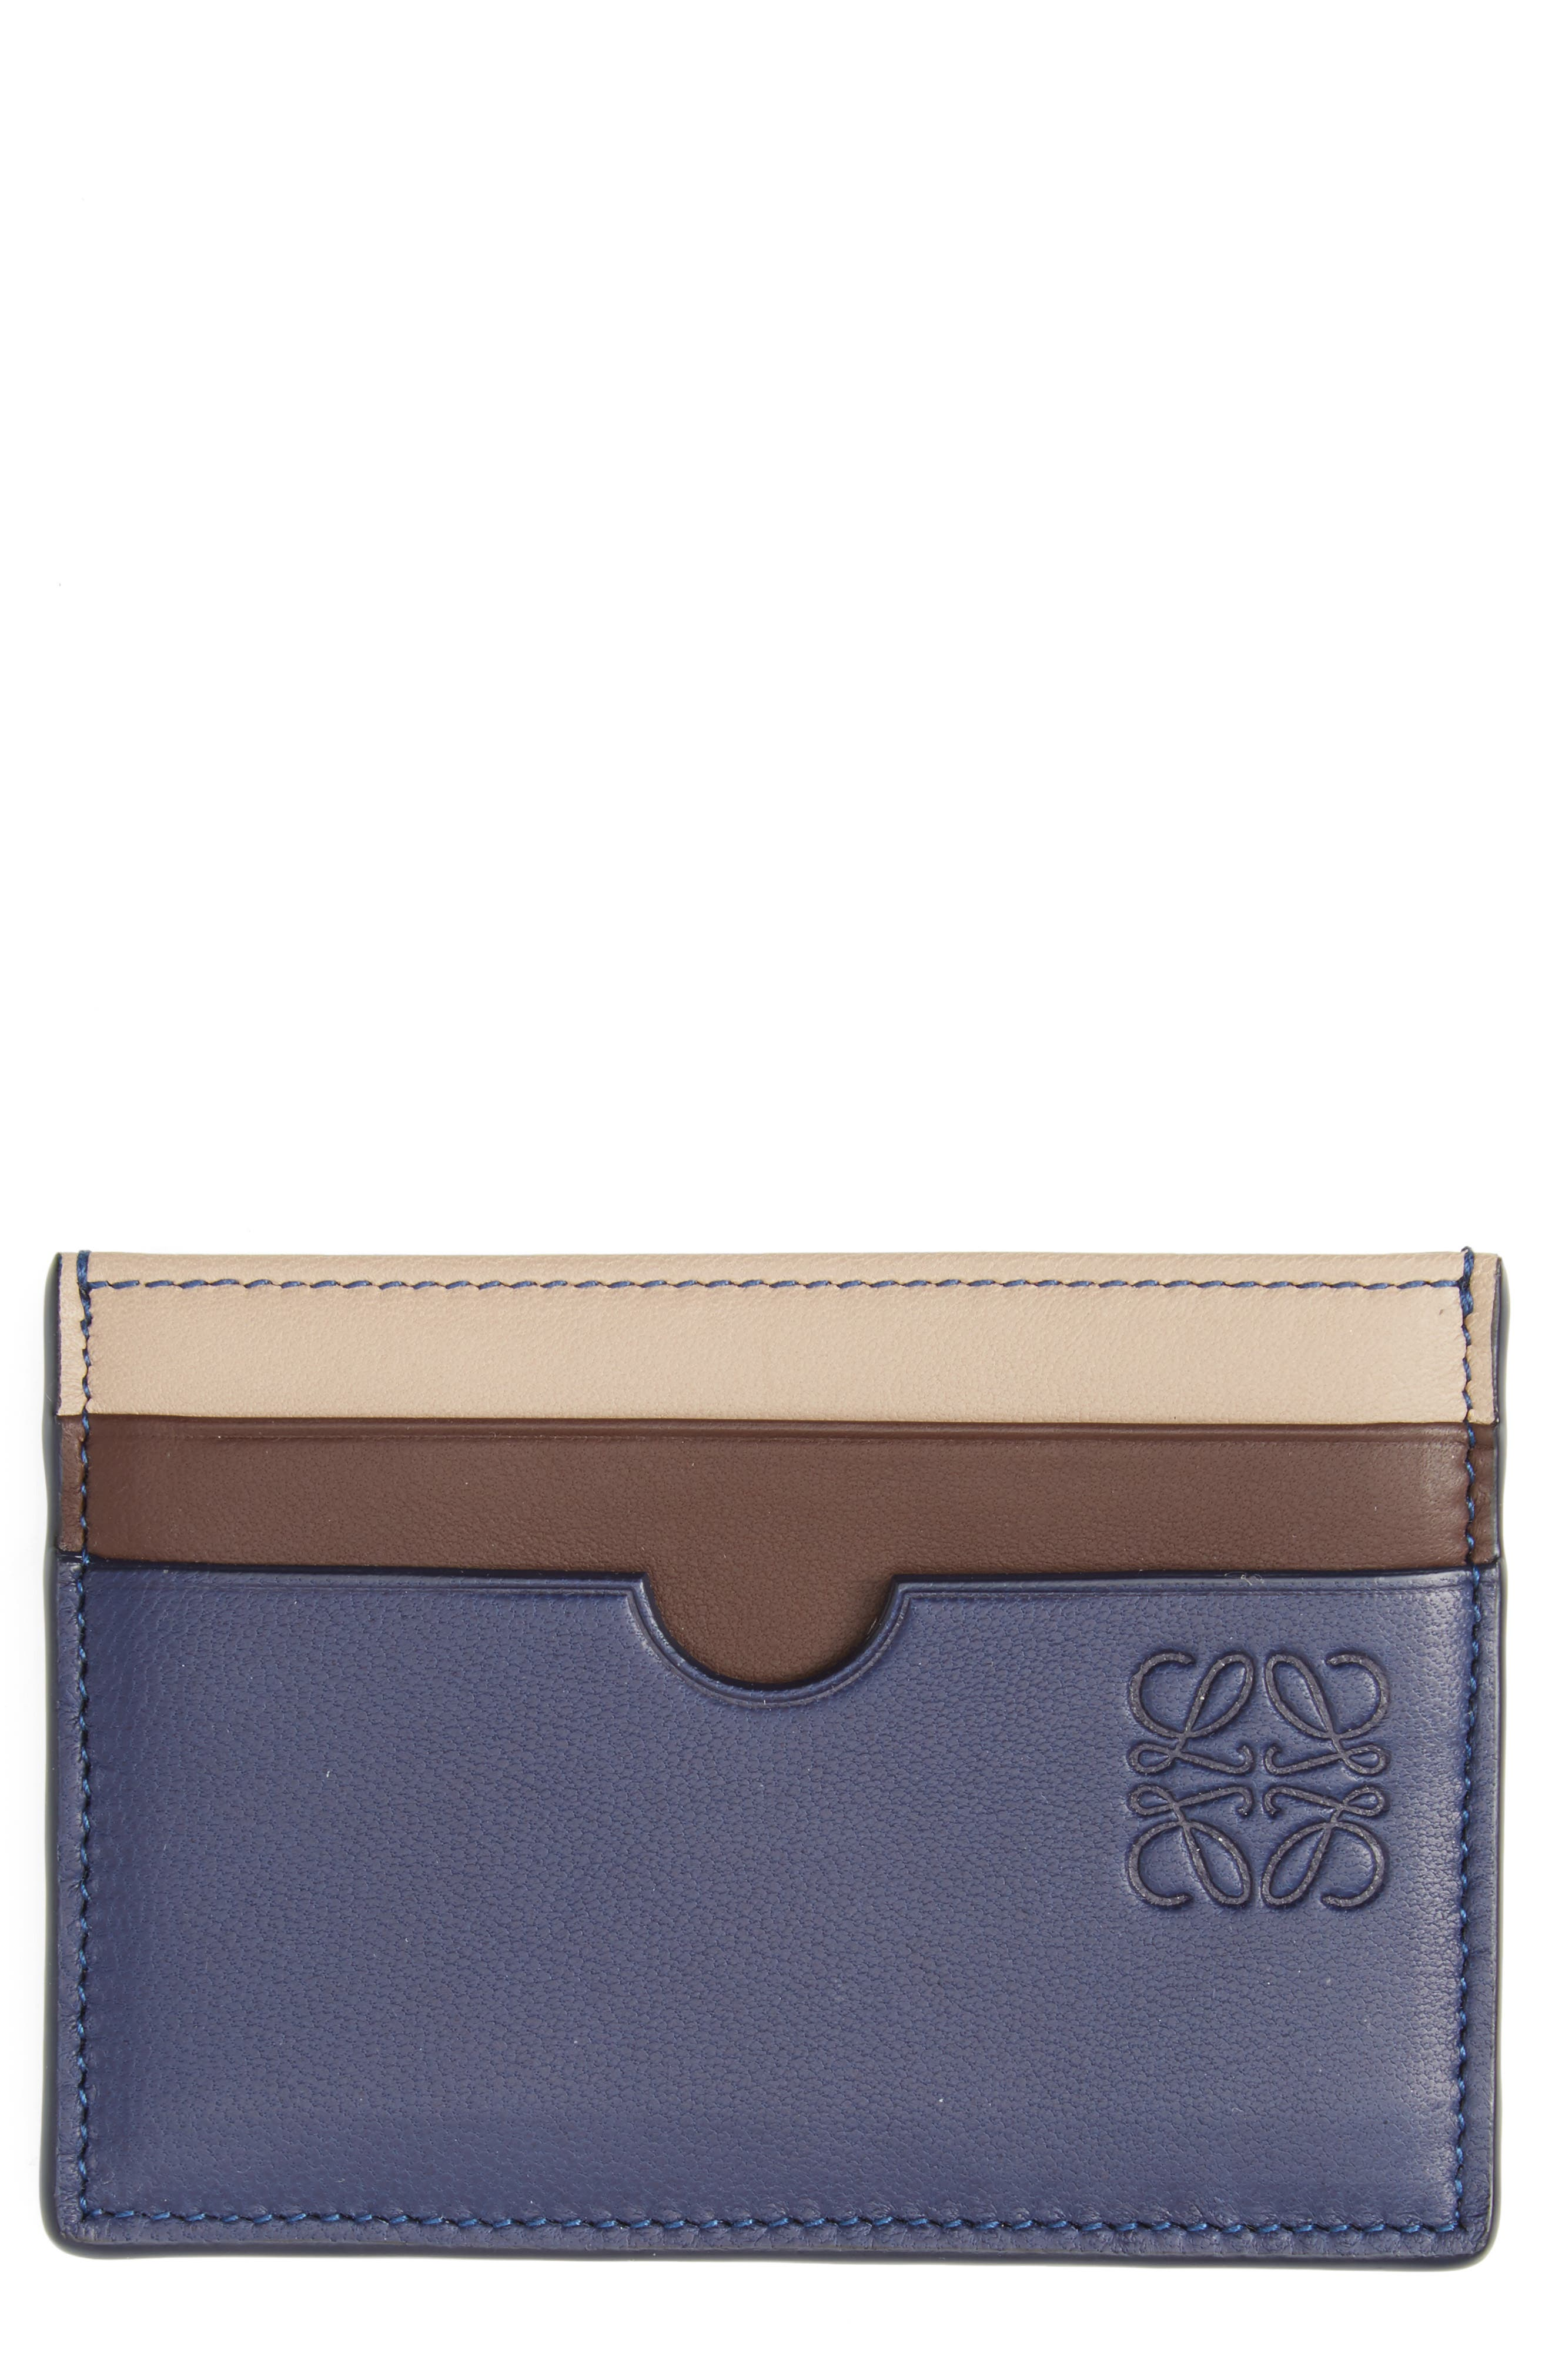 Loewe Tricolor Leather Card Case